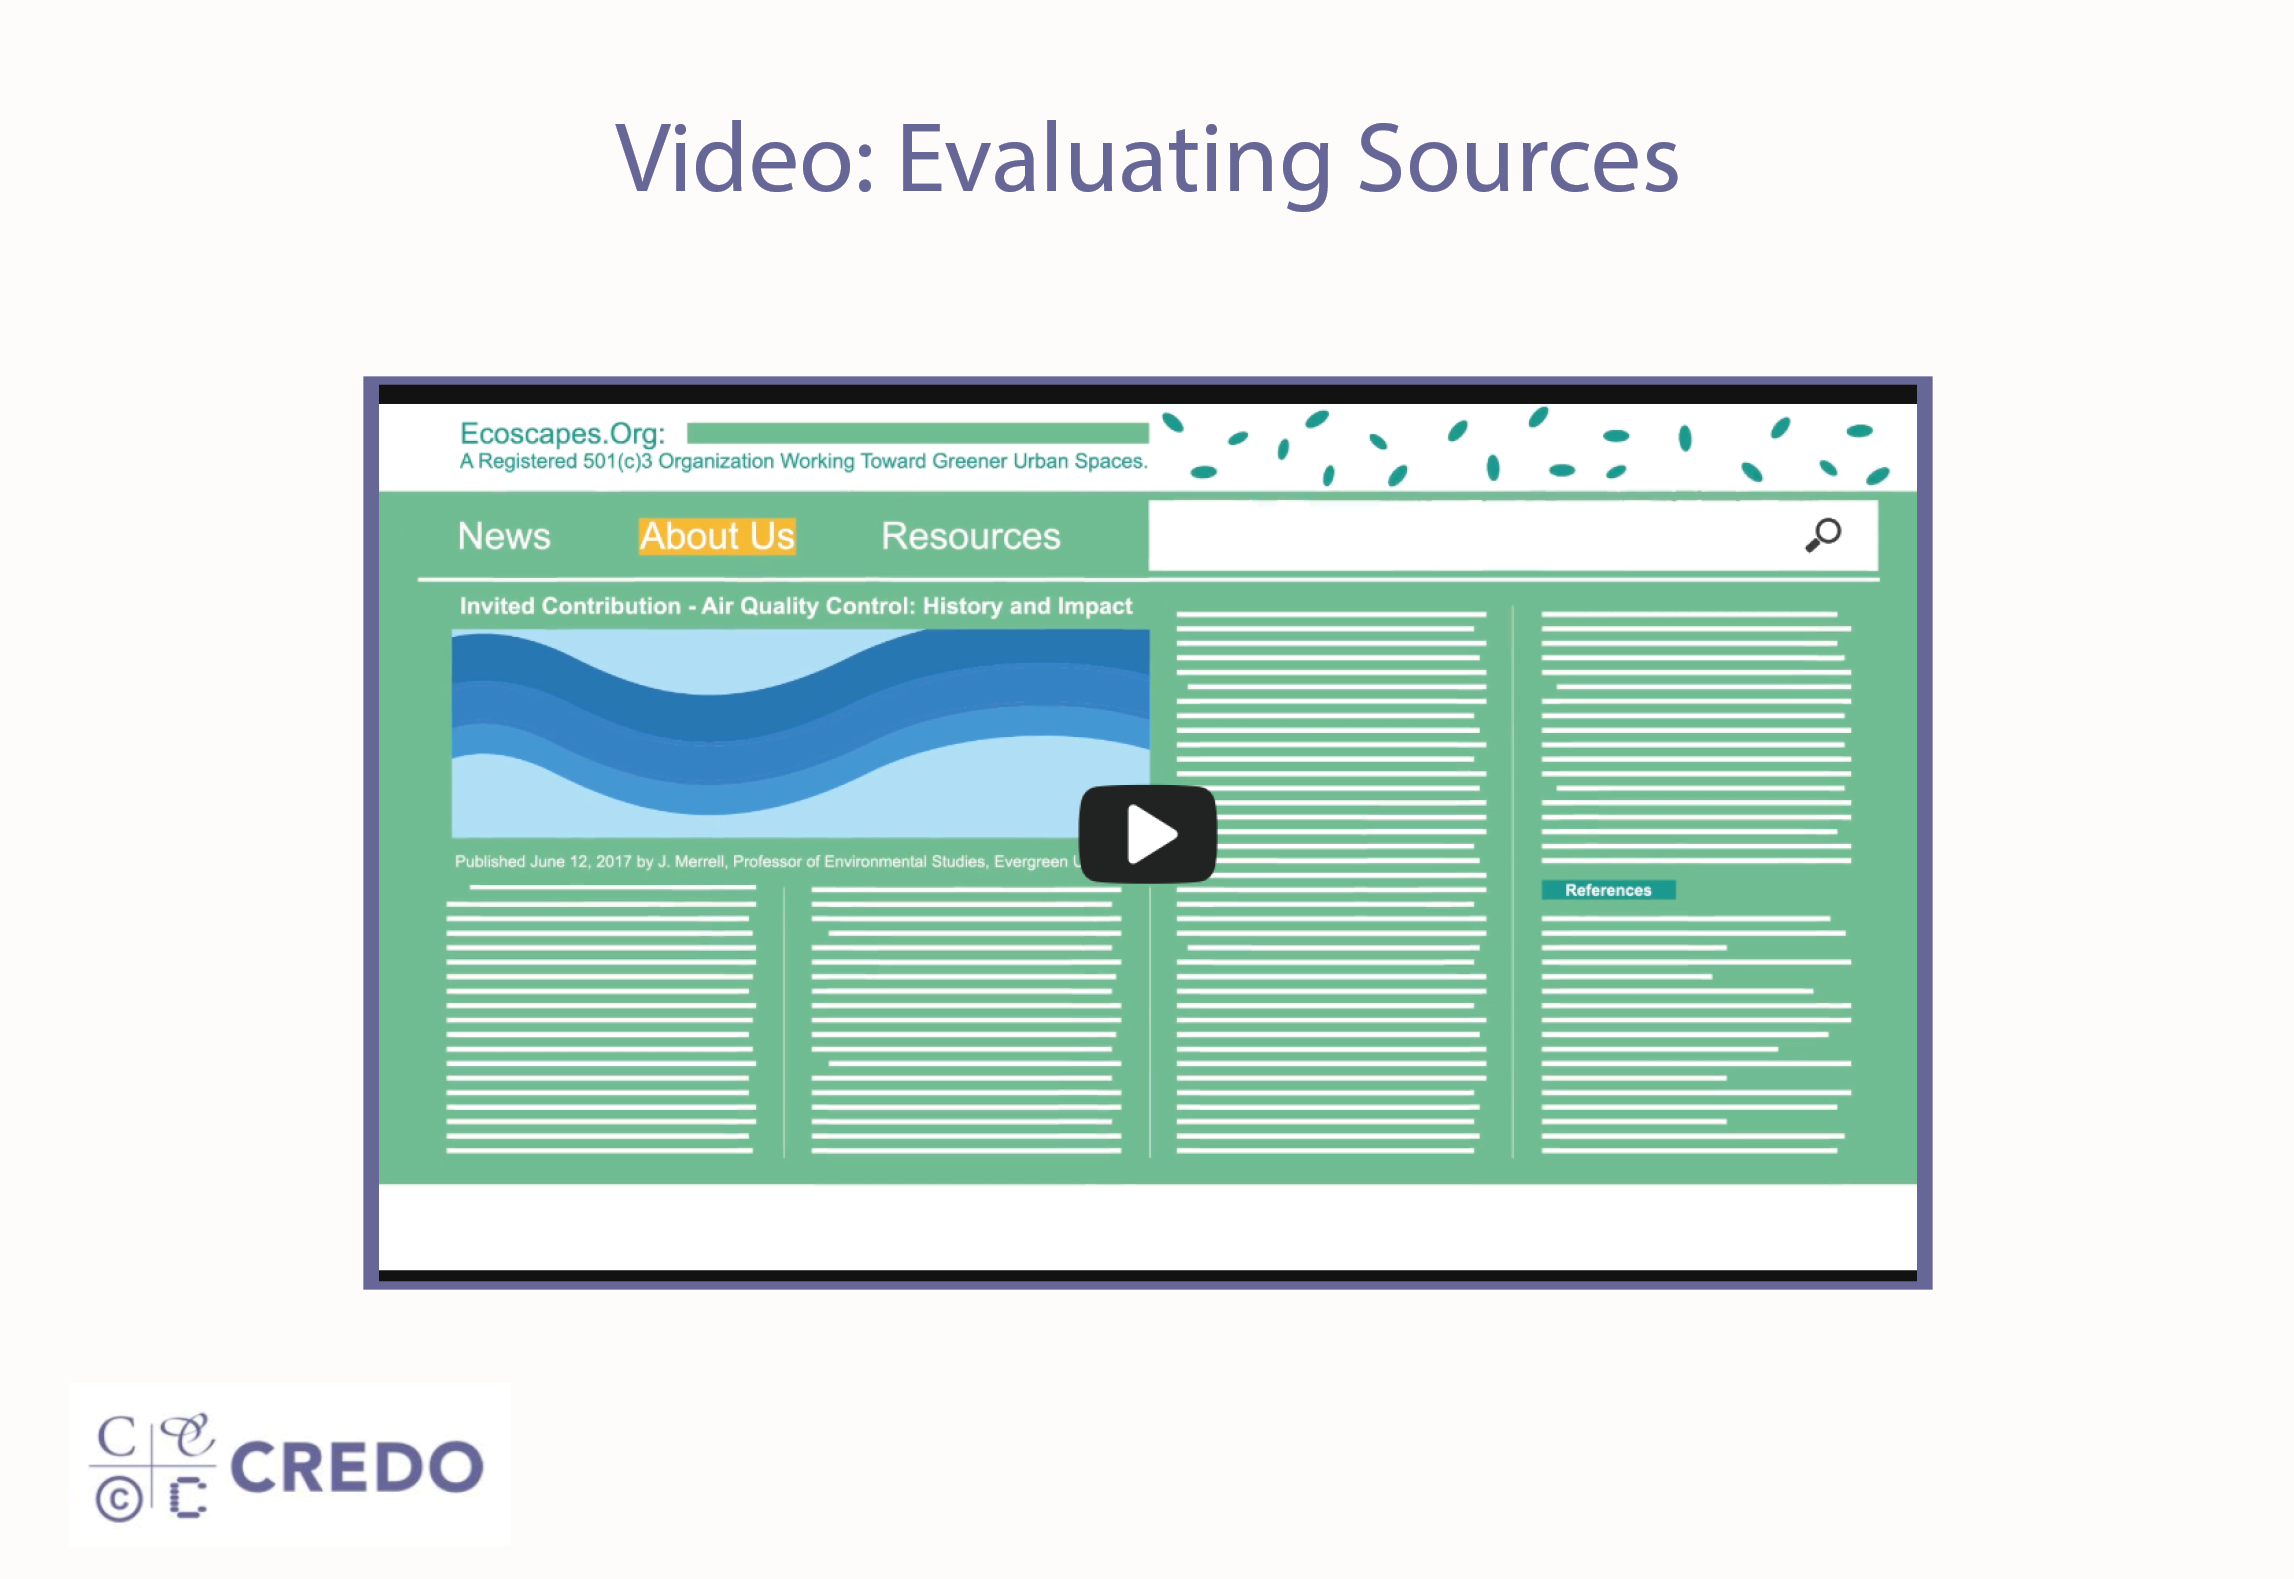 Video: Evaluating Sources